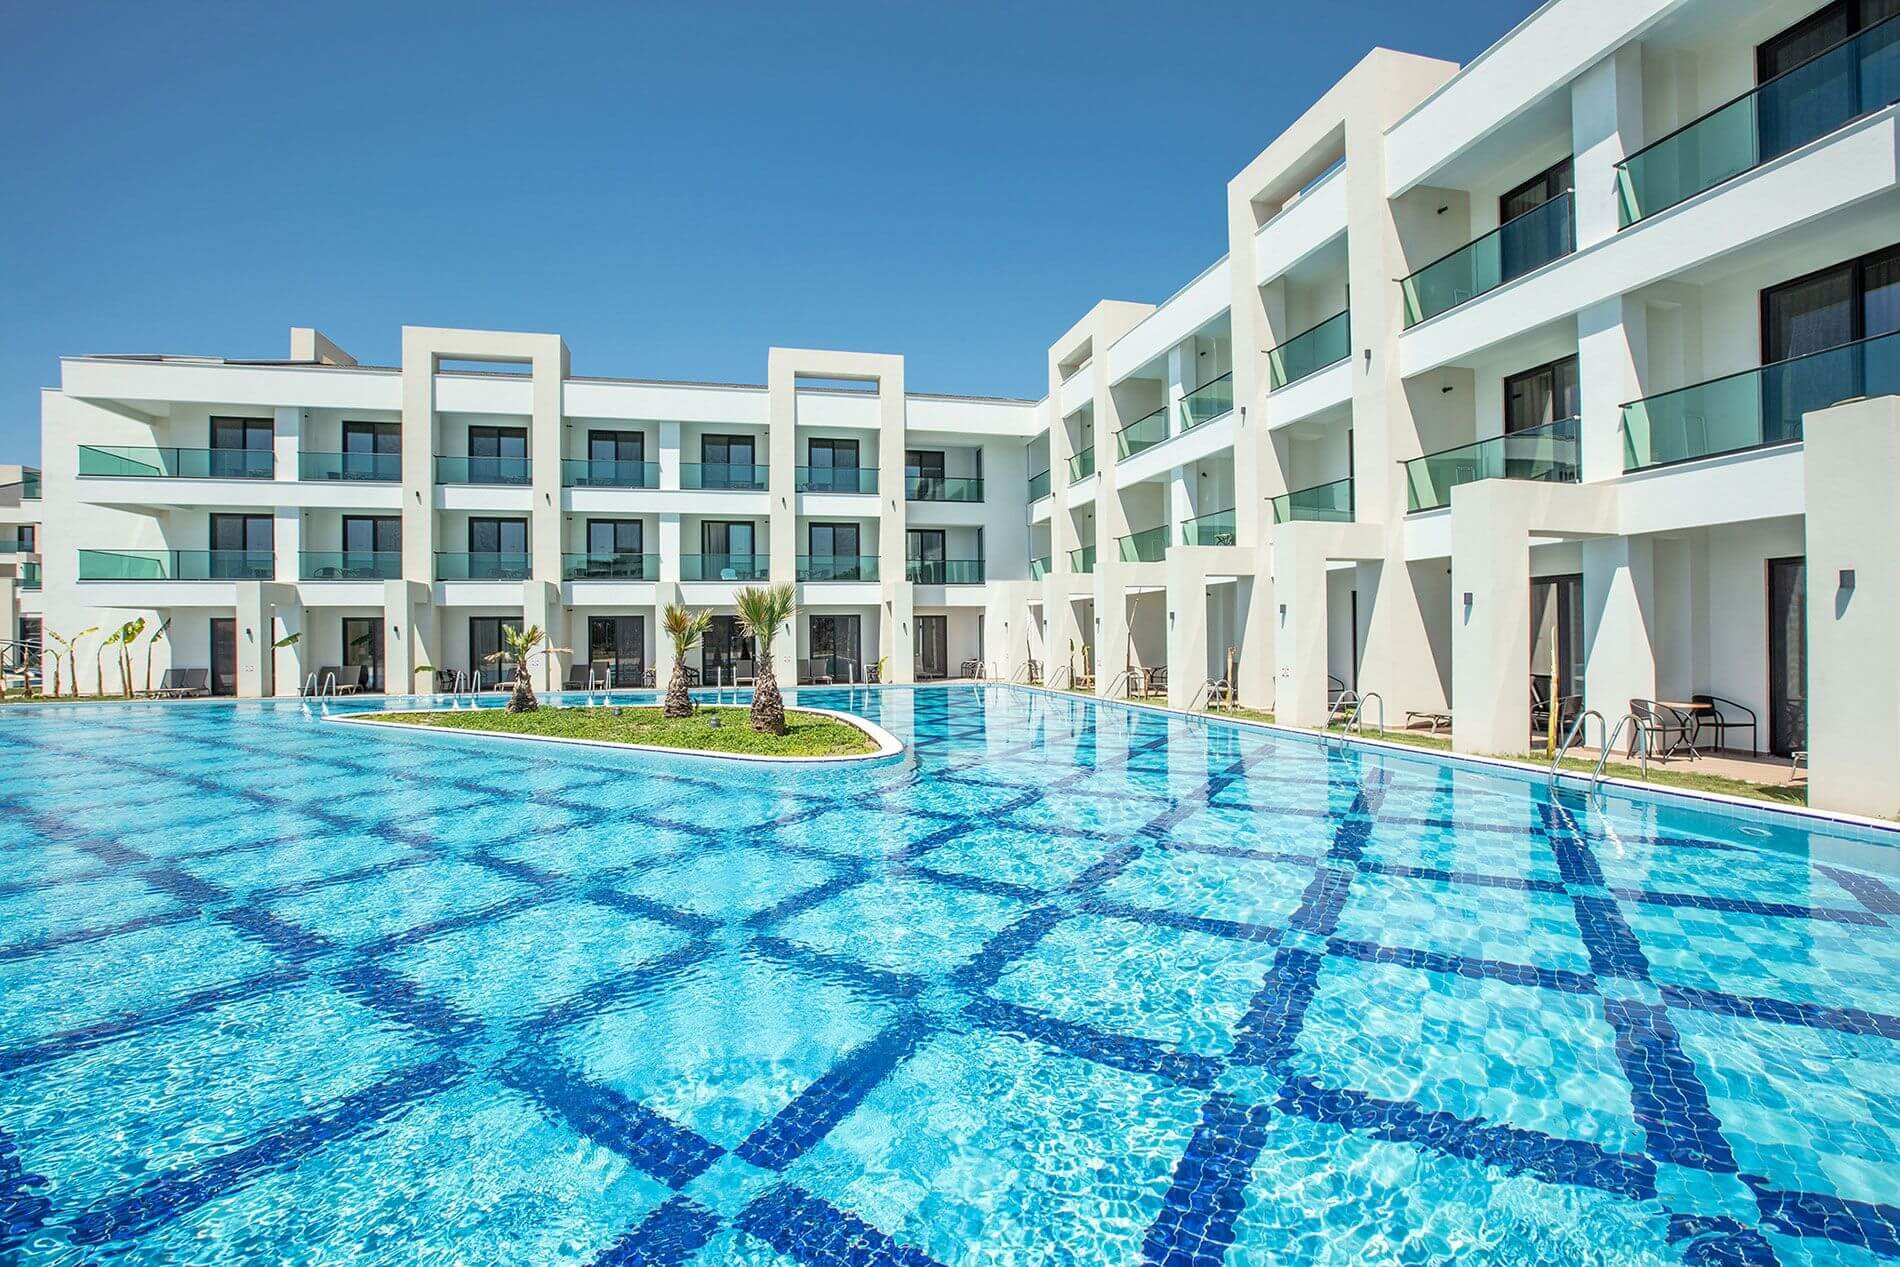 KoruMar Ephesus Beach & Spa Resort - басейн